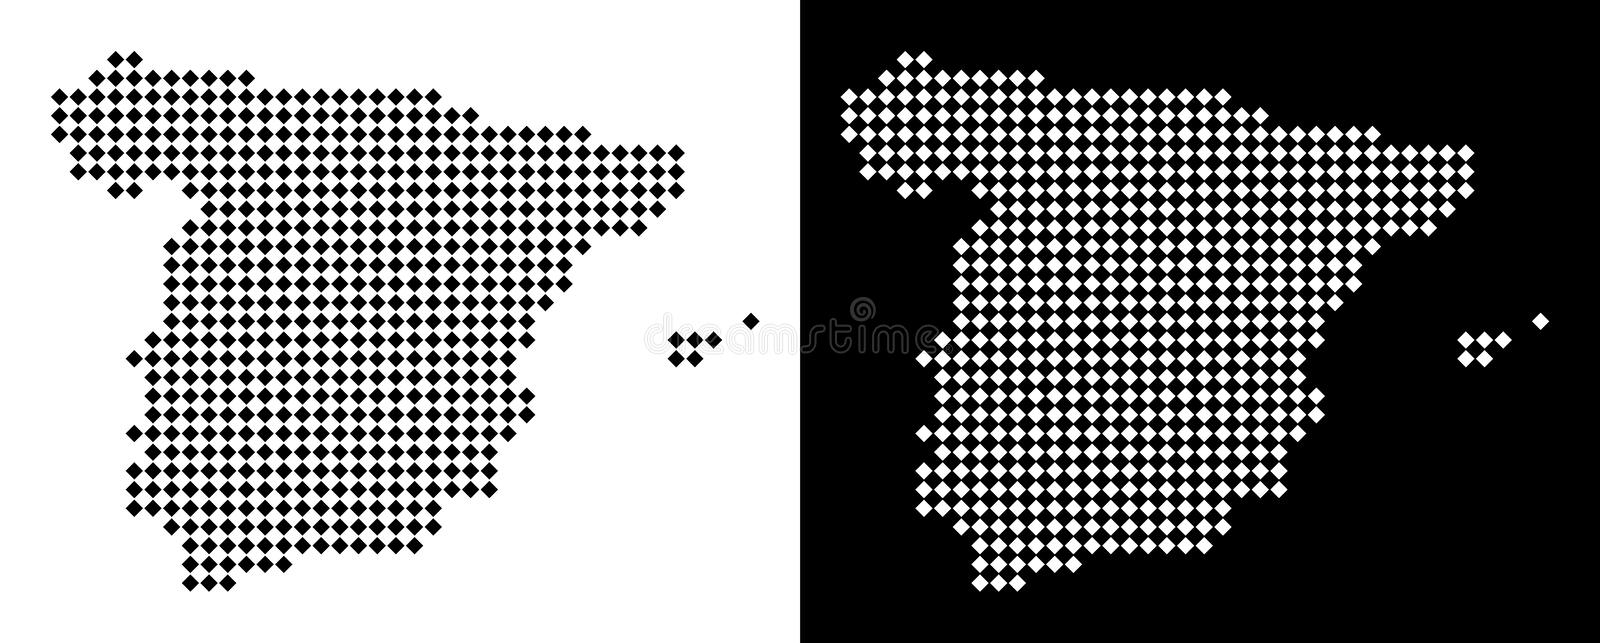 Dot Spain Map. Vector rhombic pixel Spain map. Abstract territorial maps in black and white colors on white and black backgrounds. Spain map created of rhombic vector illustration